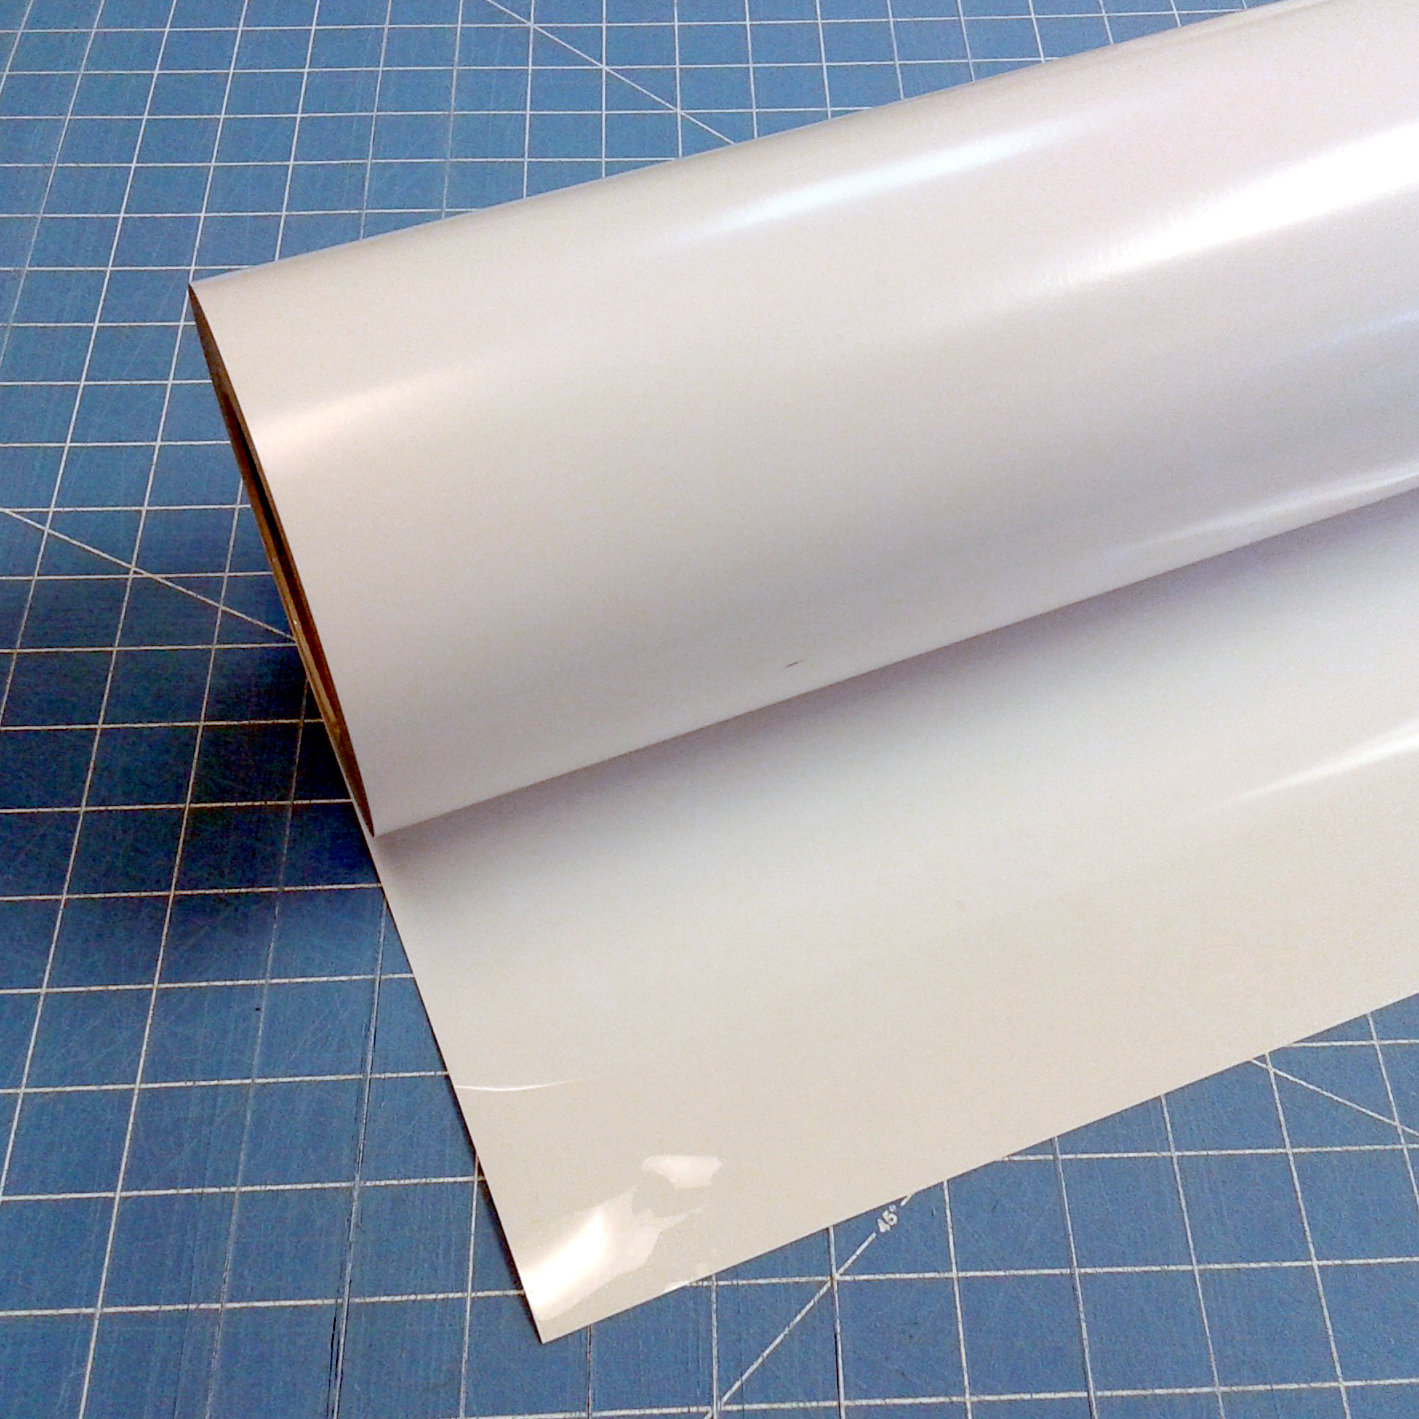 "White Siser Easyweed Stretch 15"" x 20' (feet) Iron on Heat Transfer Vinyl Roll HTV"